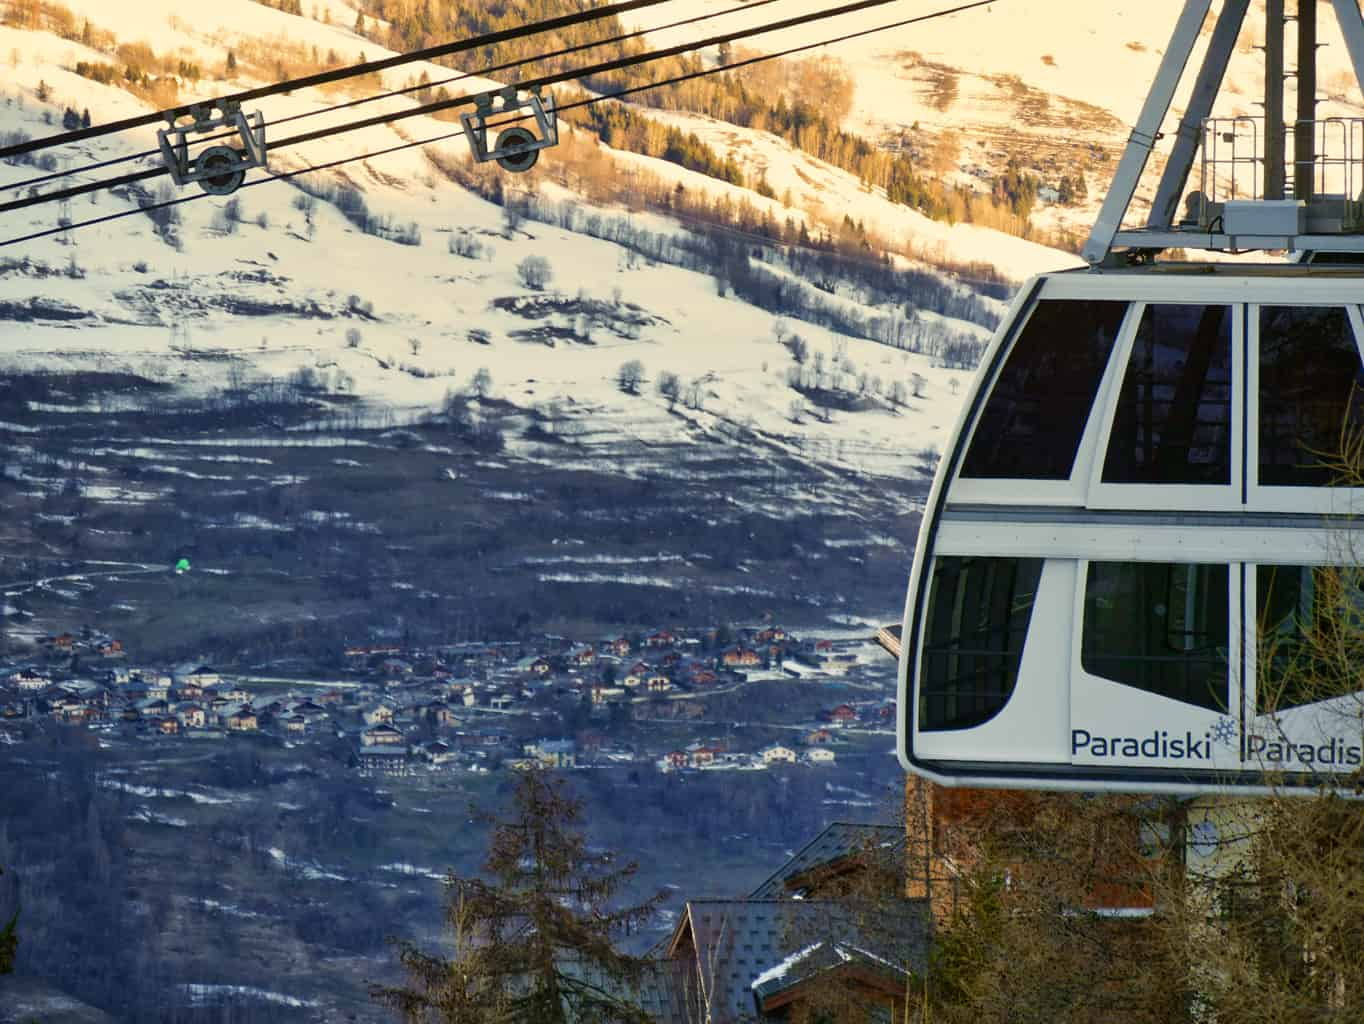 Vanoise Express gondola with French Alp mountains in background